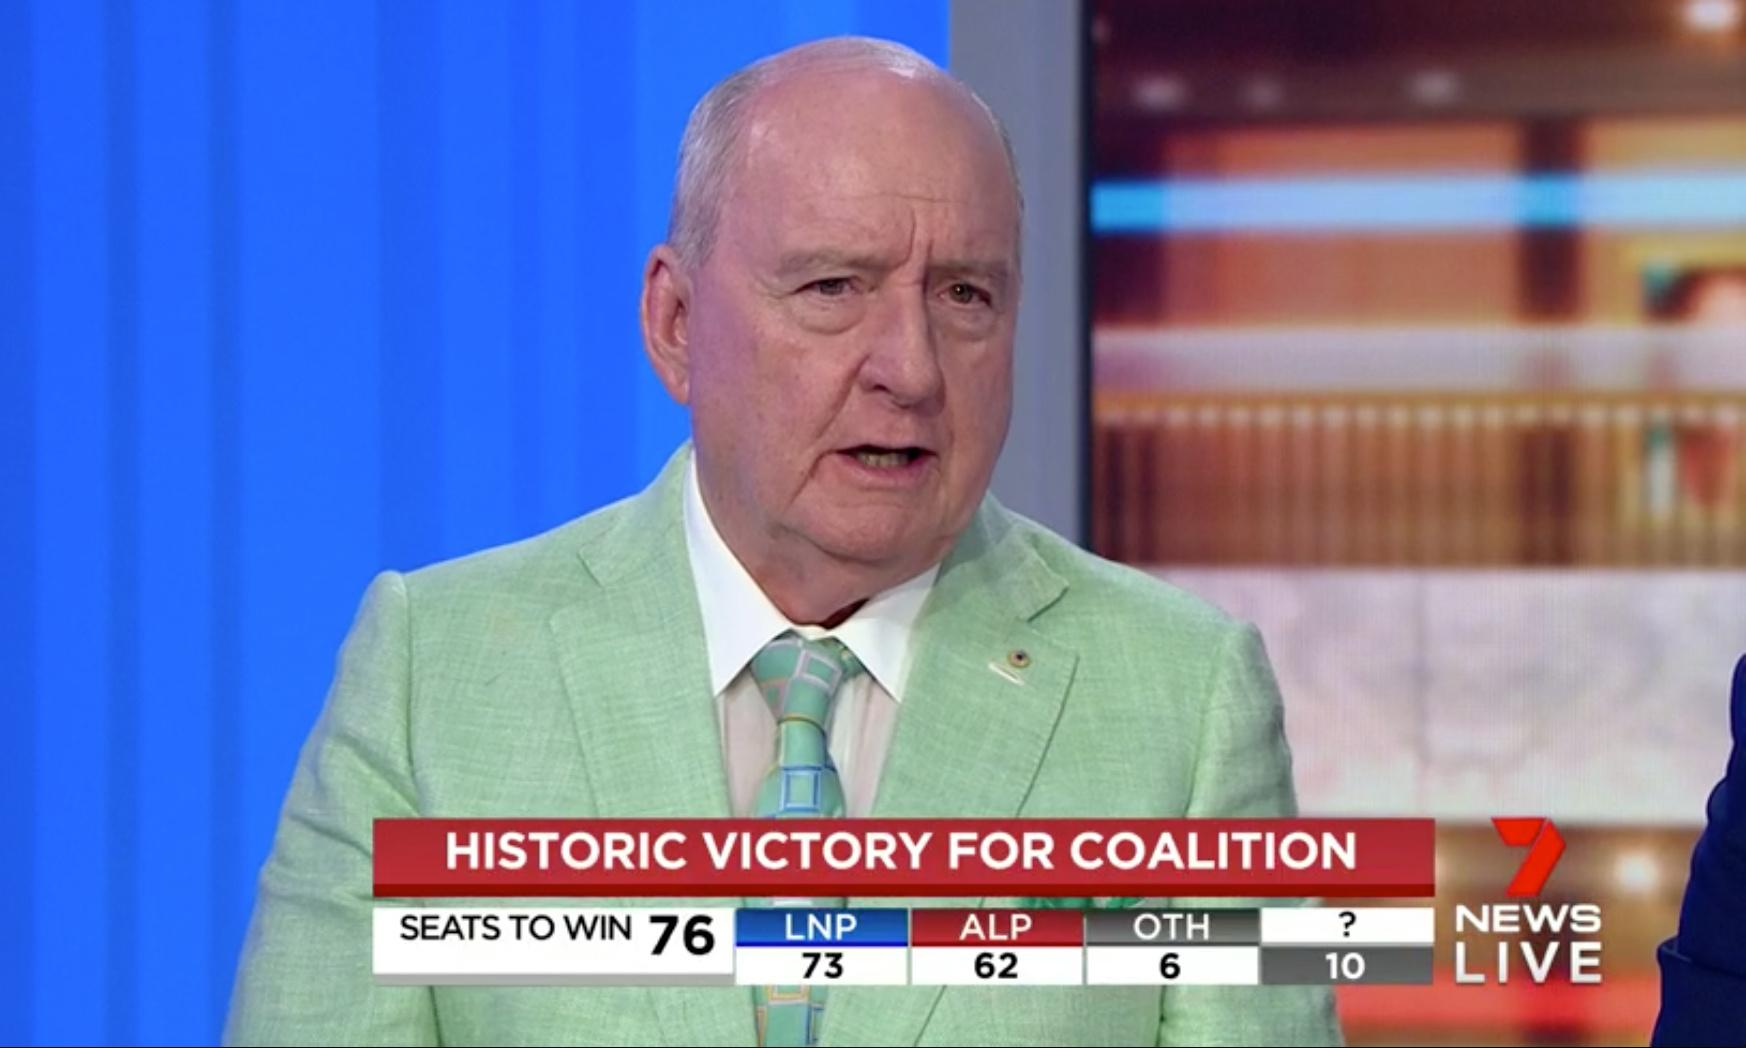 Alan Jones, killer canaries and Abbott's 'dark forces': how the election unfolded on TV